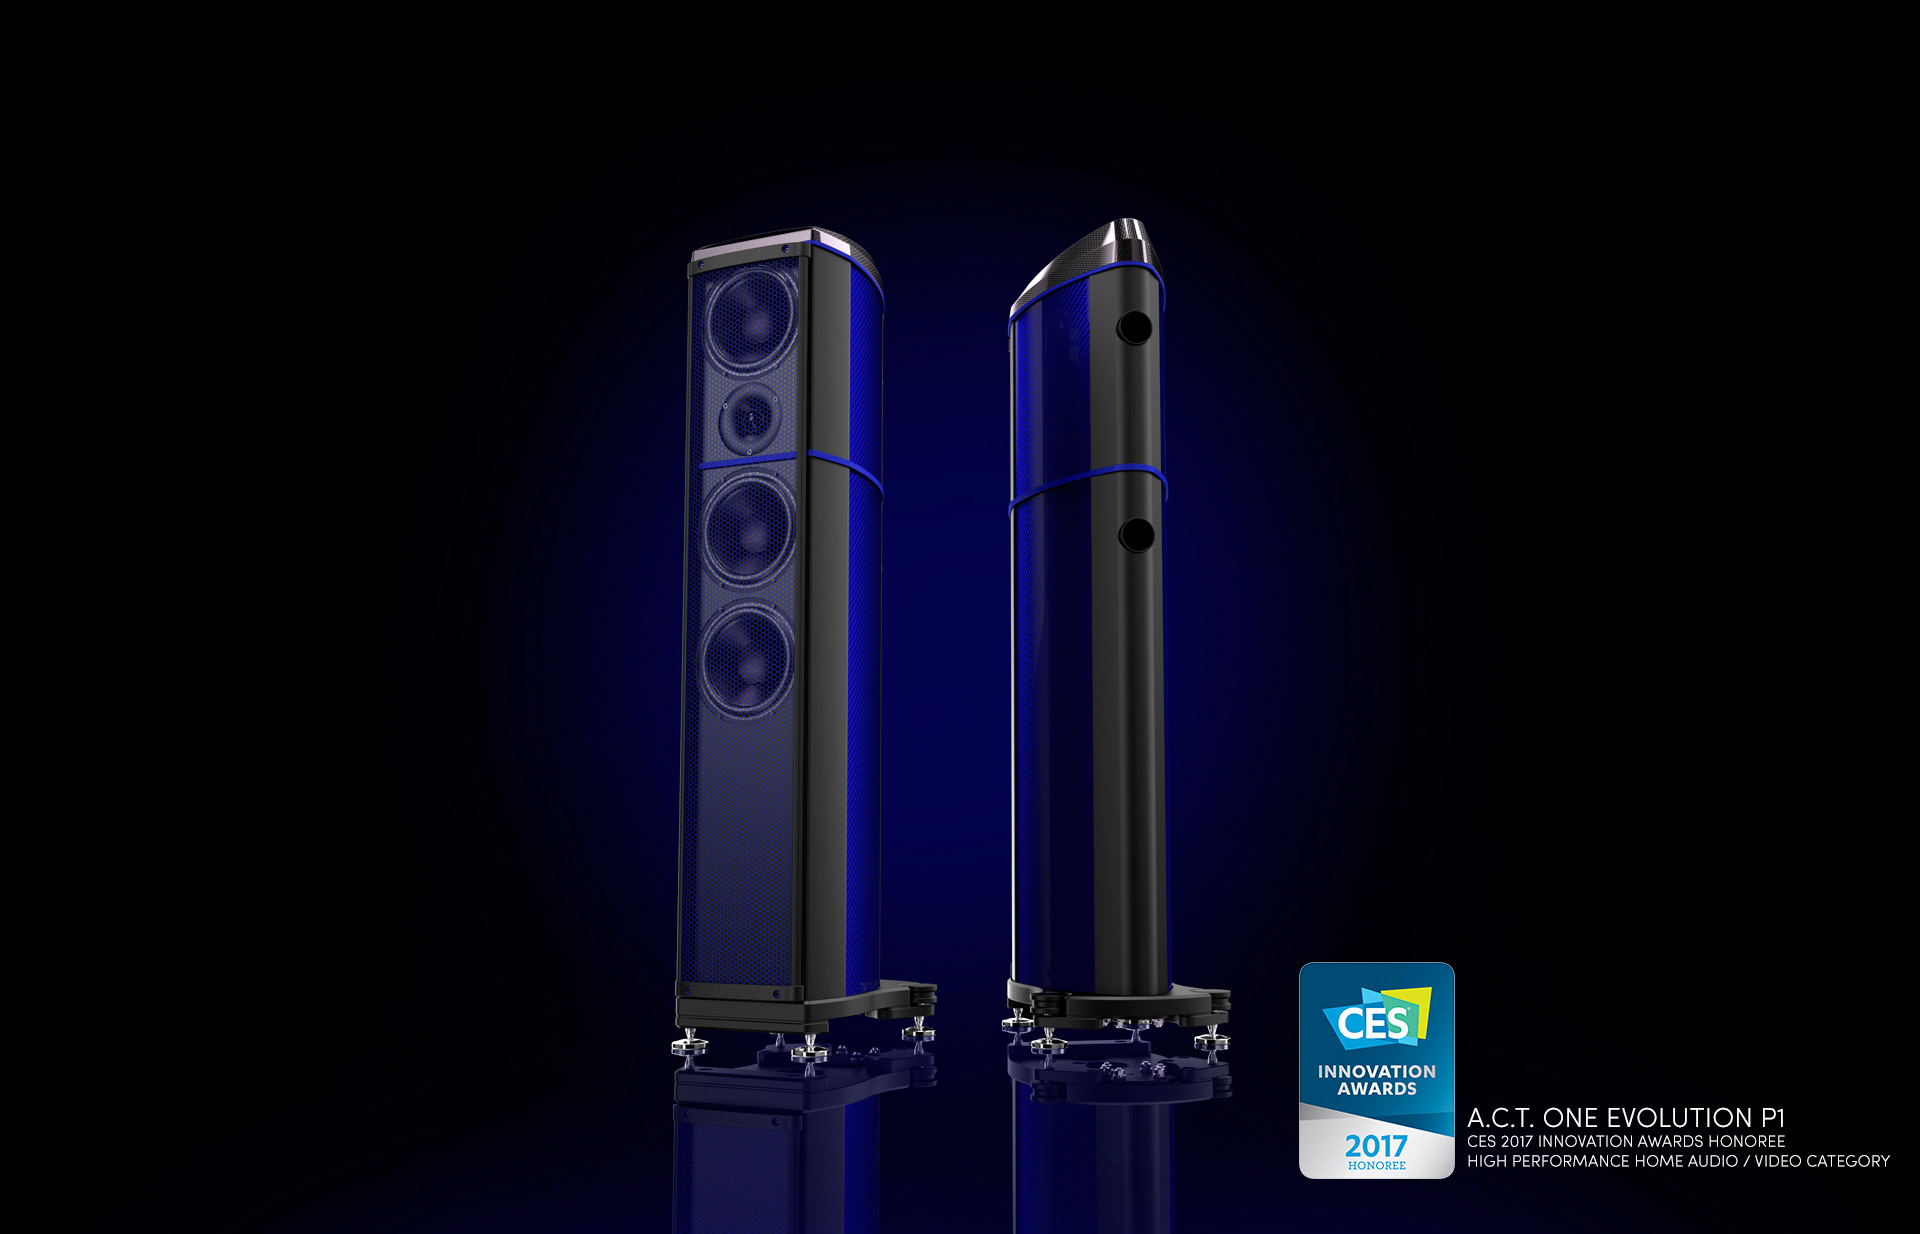 A.C.T. One Evolution P1 - Coloured Carbon Fibre - Floorstanding Loudspeaker - Ettore Blue Finish - CES 2017 - Innovation Award Honouree